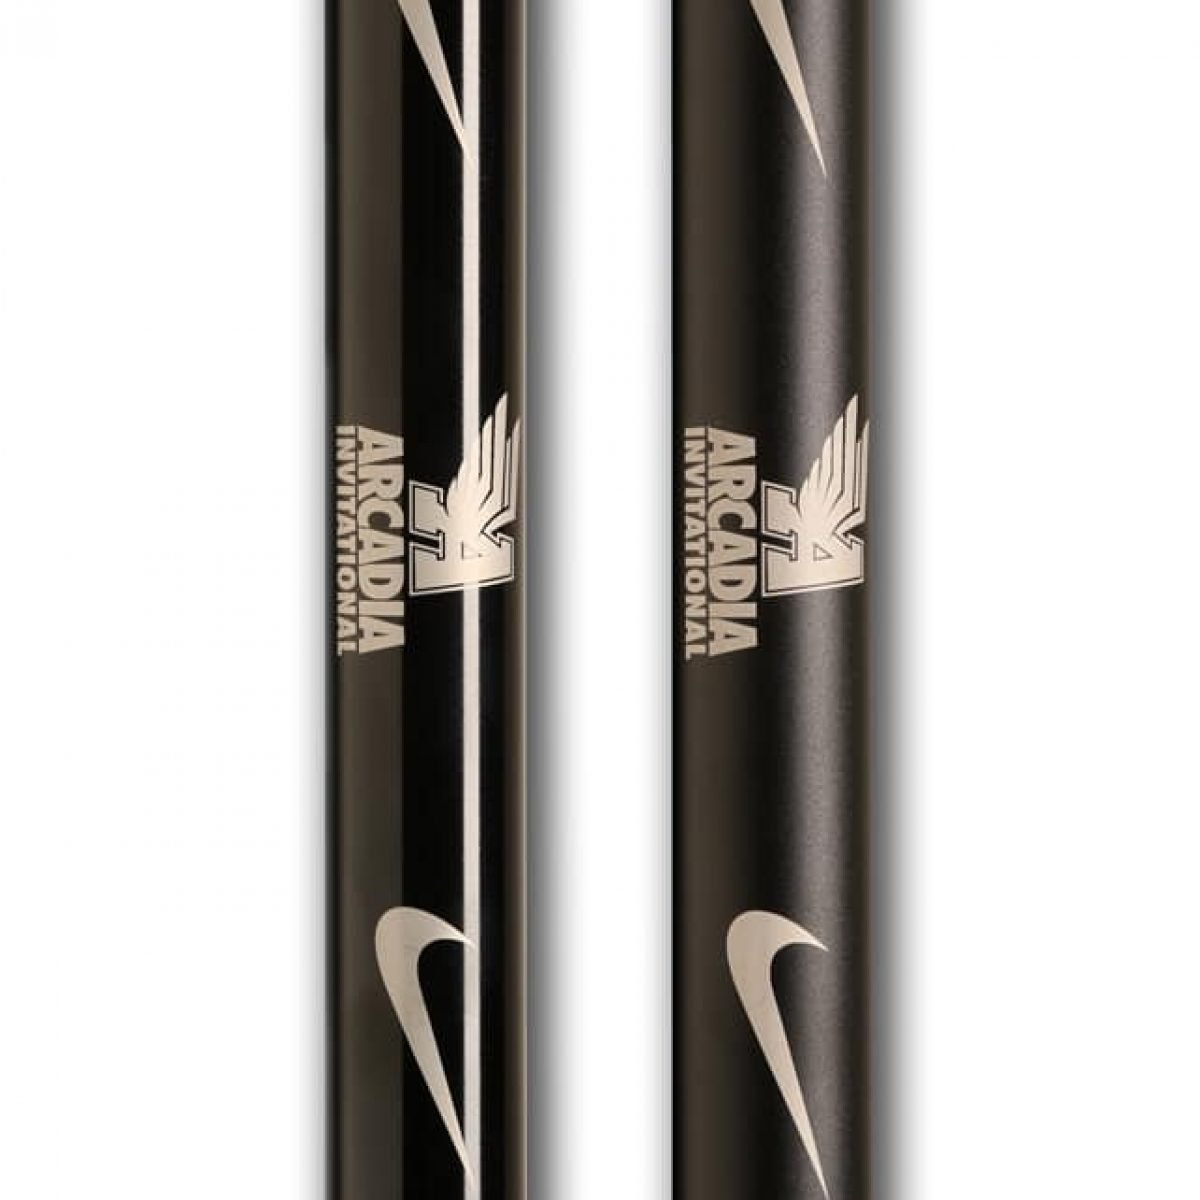 Batons in Glossy and Matte Finishes (RelayBatons.com)